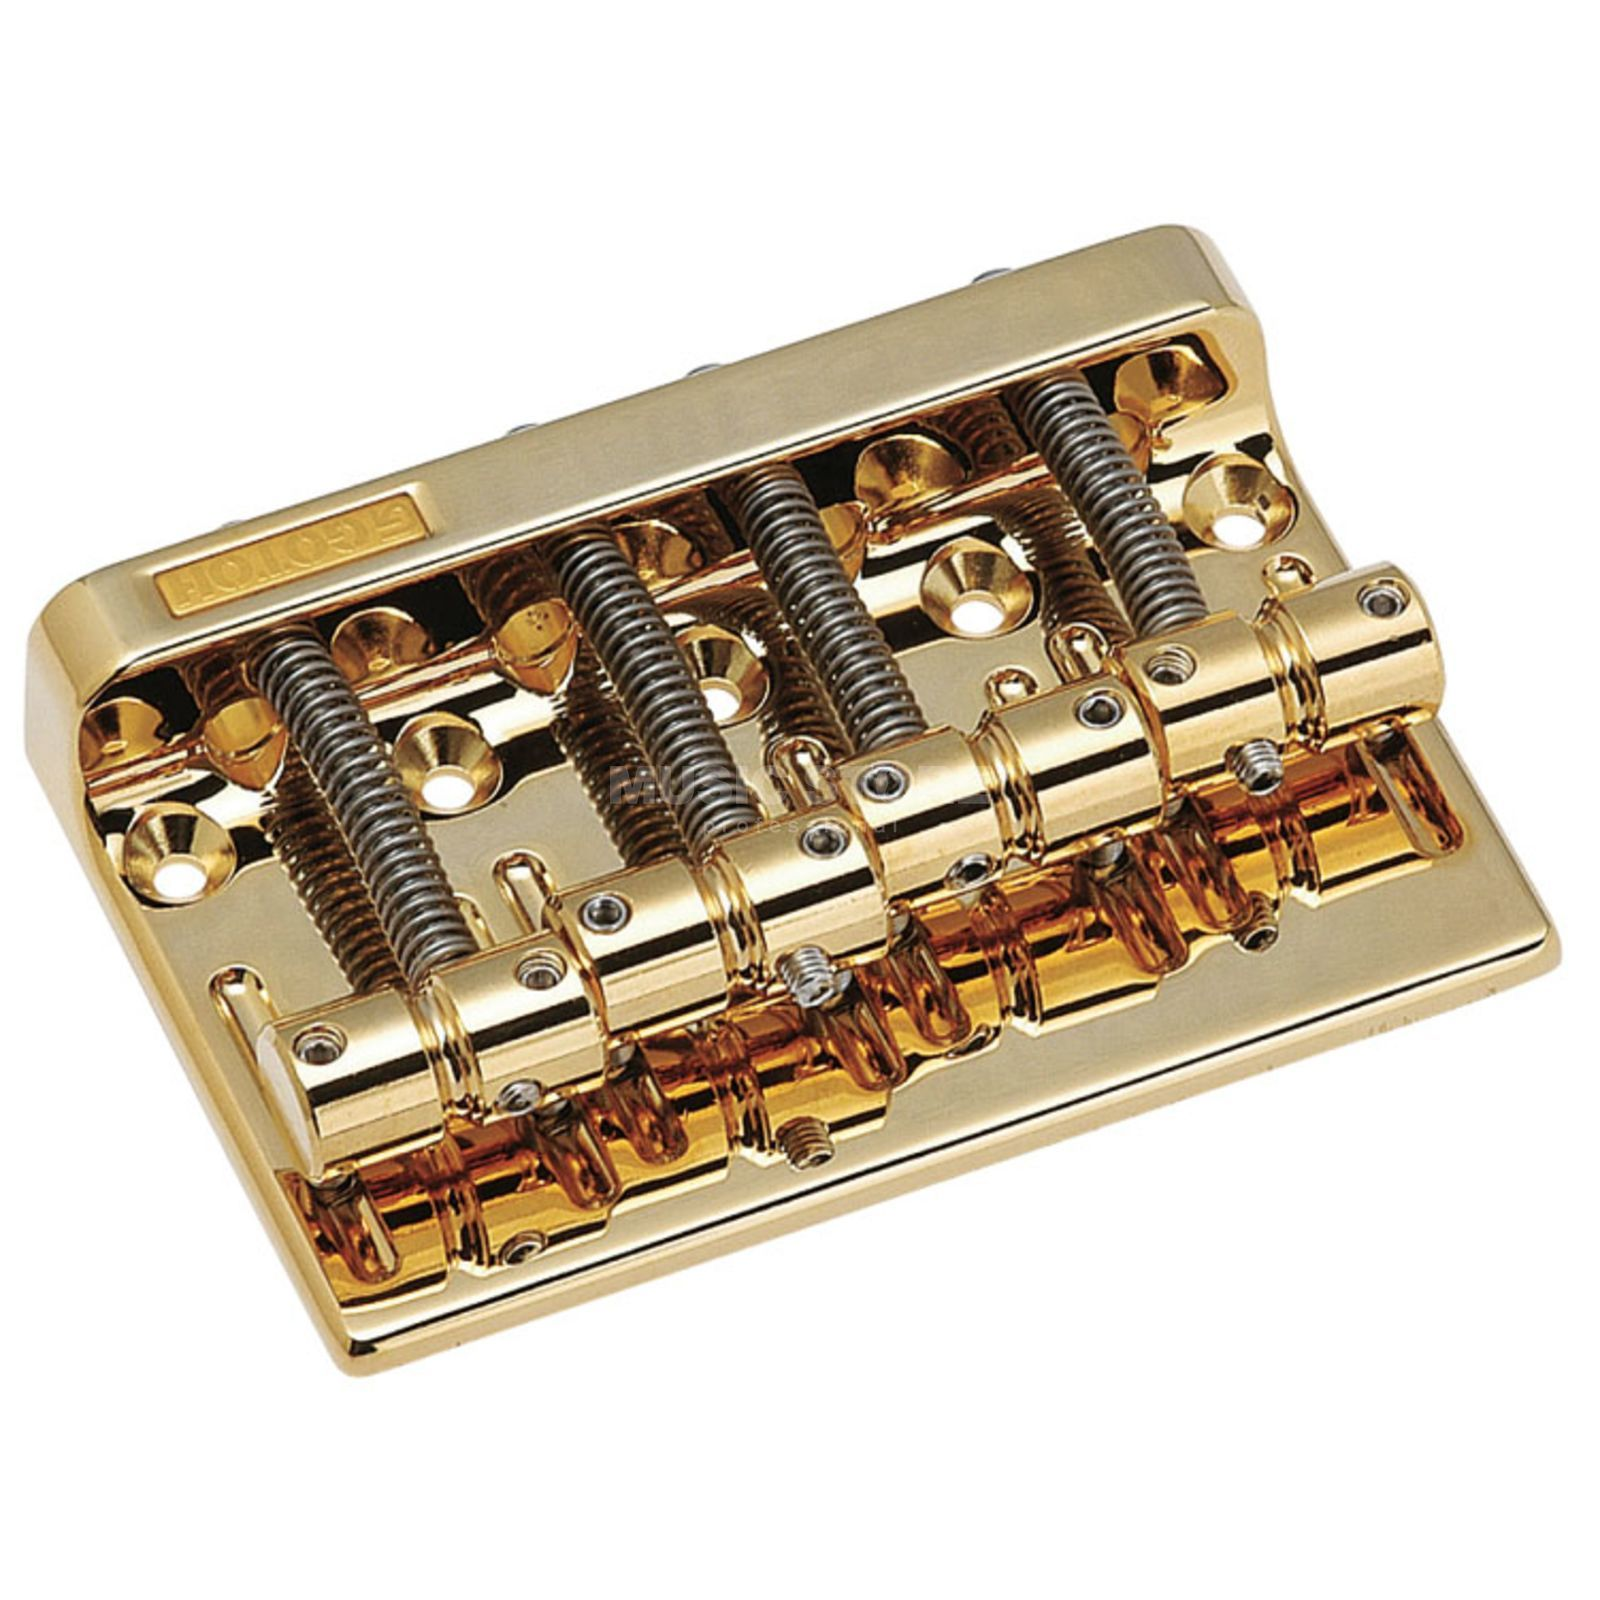 Gotoh Bass Bridge 201-B4 Gold  Product Image